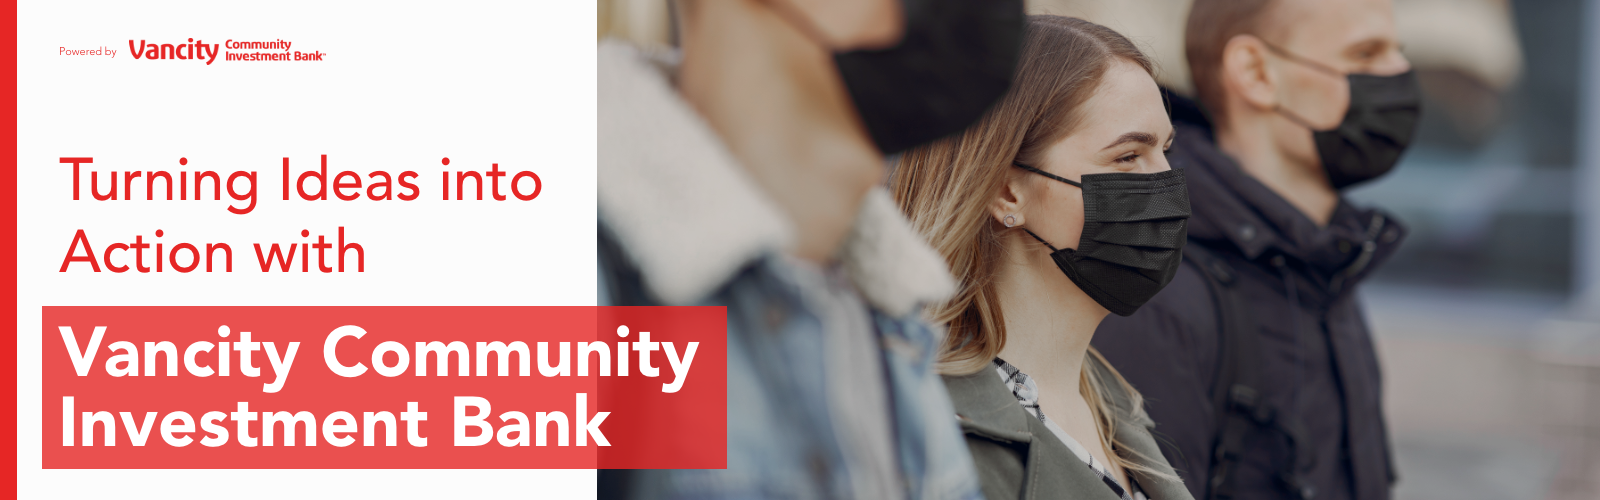 Turning Ideas into Action with Vancity Community Investment Bank